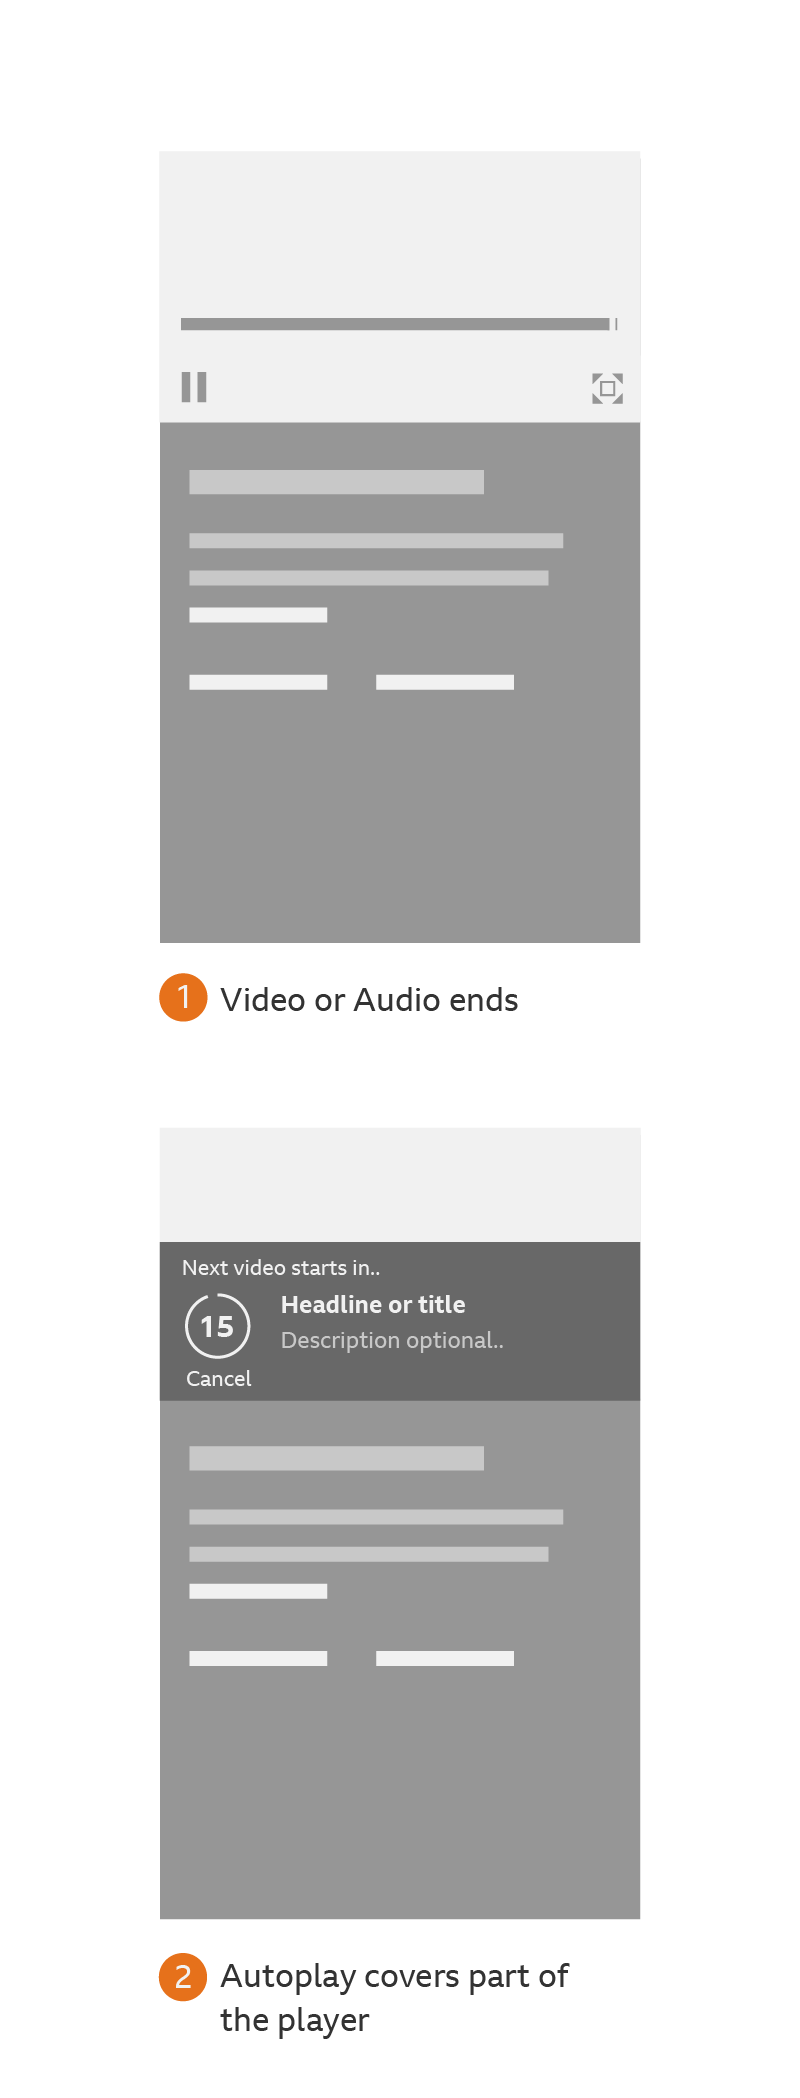 Example of the compact version of the Autoplay panel.